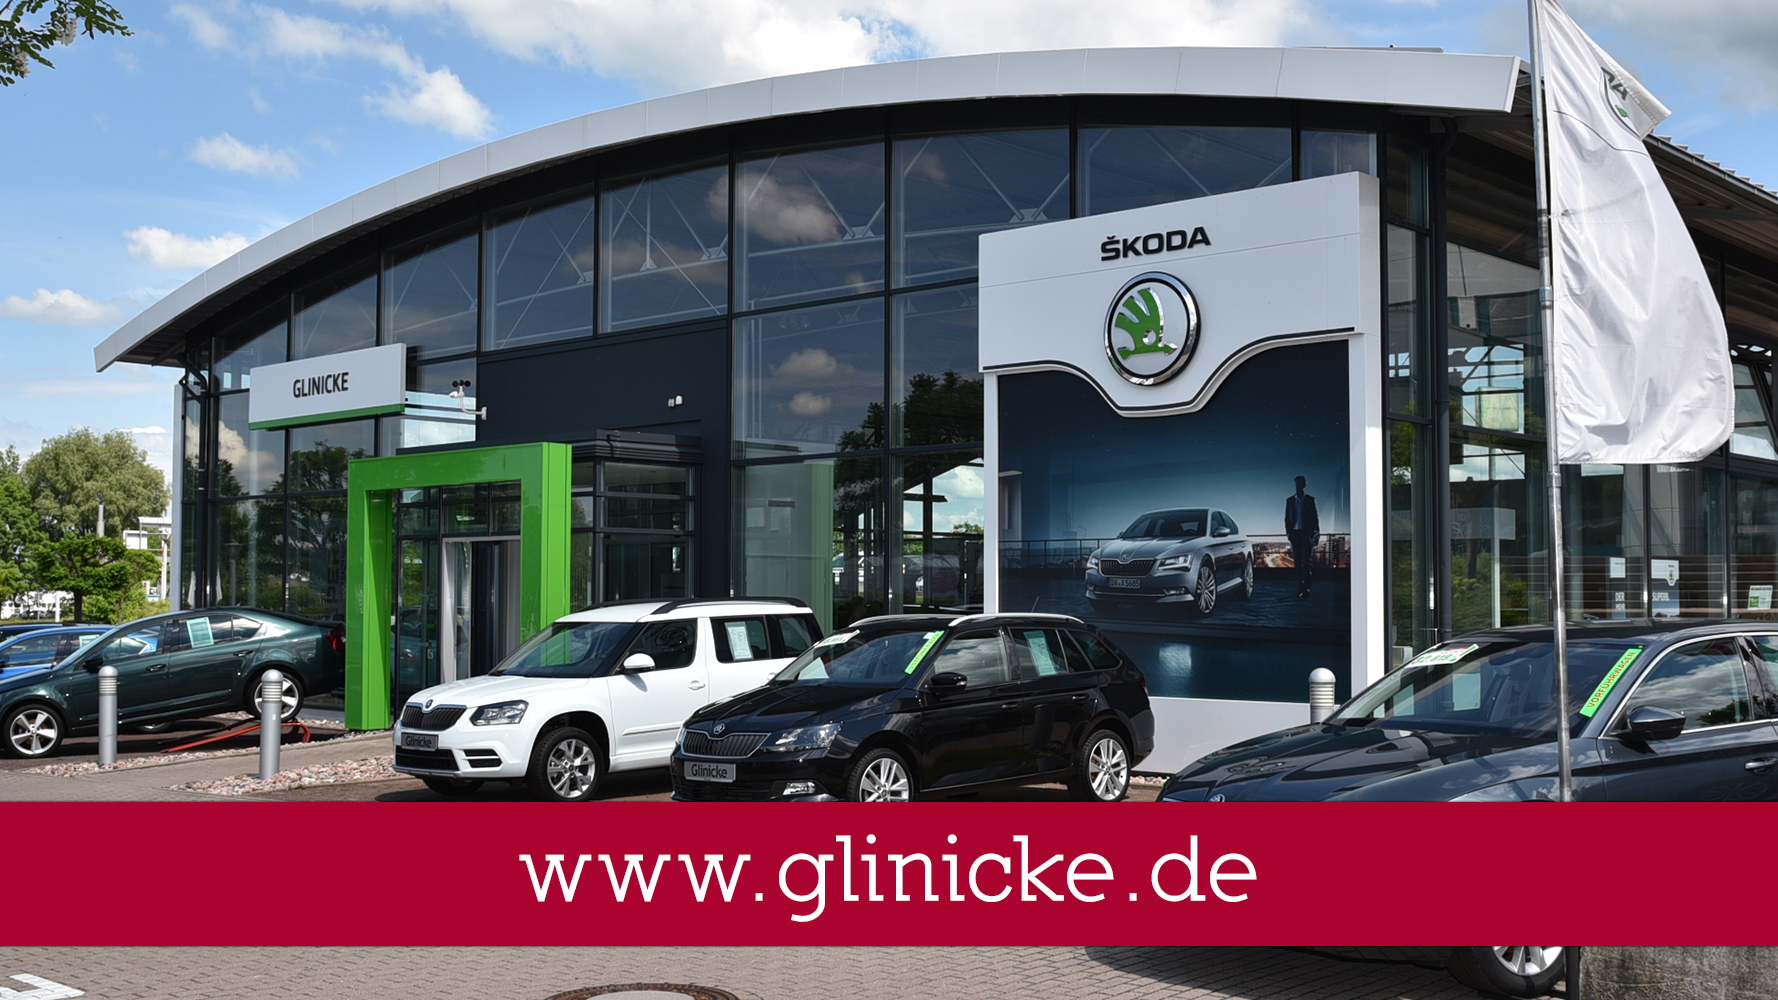 skoda erfurt glinicke in erfurt branchenbuch deutschland. Black Bedroom Furniture Sets. Home Design Ideas